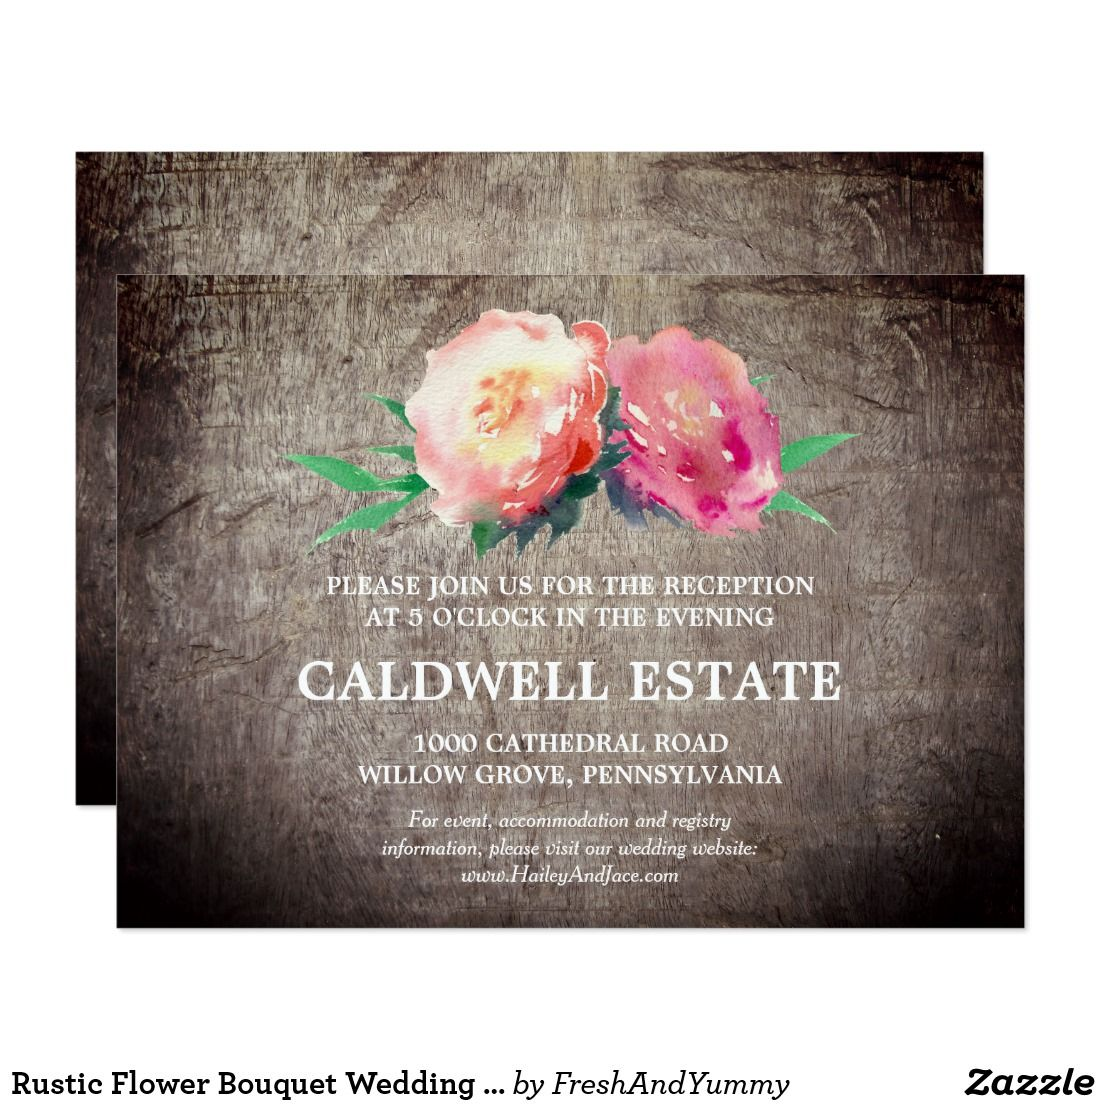 Rustic Flower Bouquet Wedding Reception Insert Card This Rustic